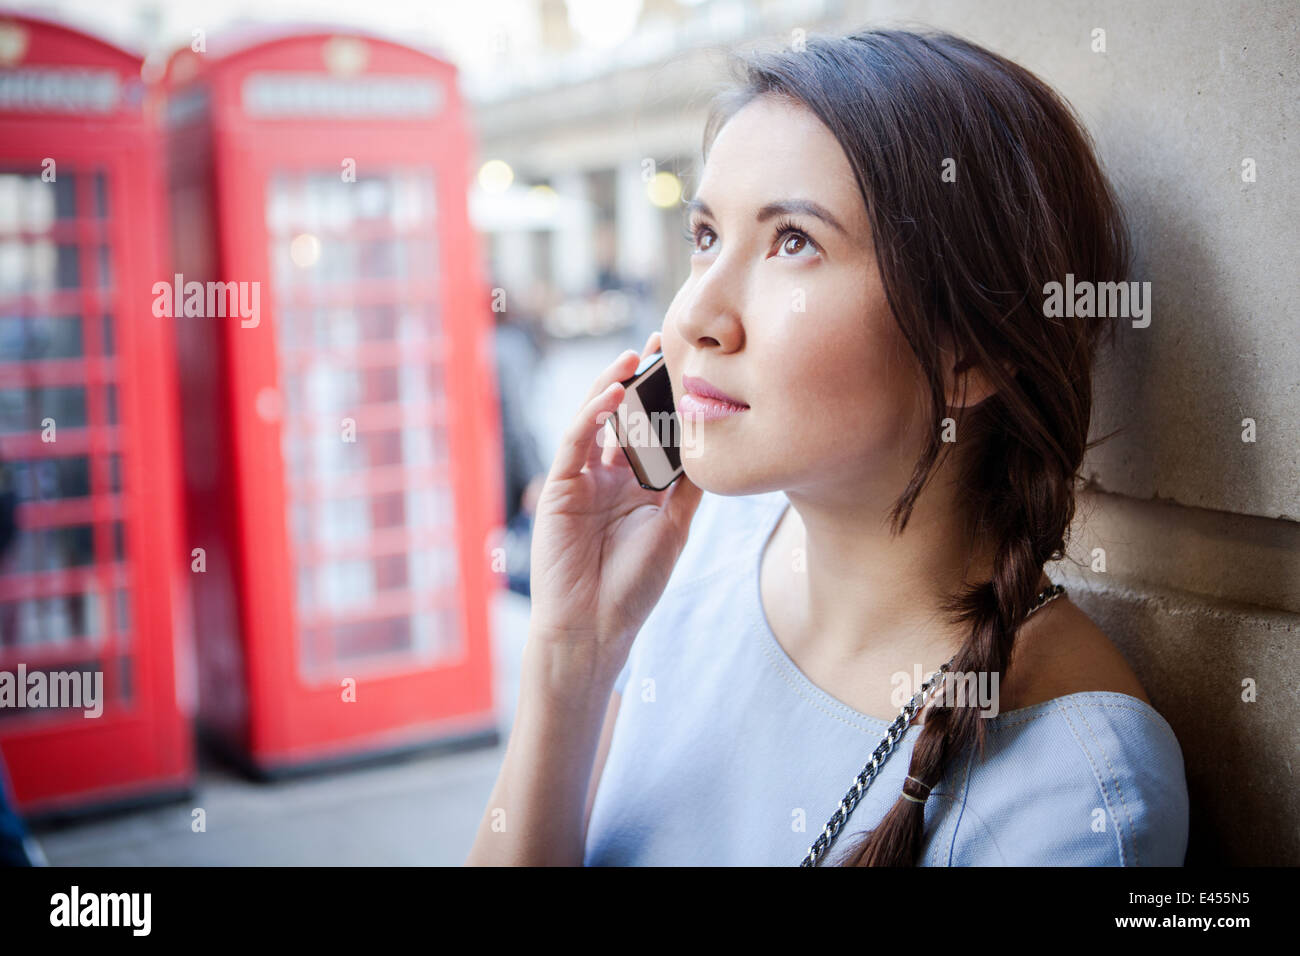 Young woman on smartphone, in front of red London telephone box - Stock Image